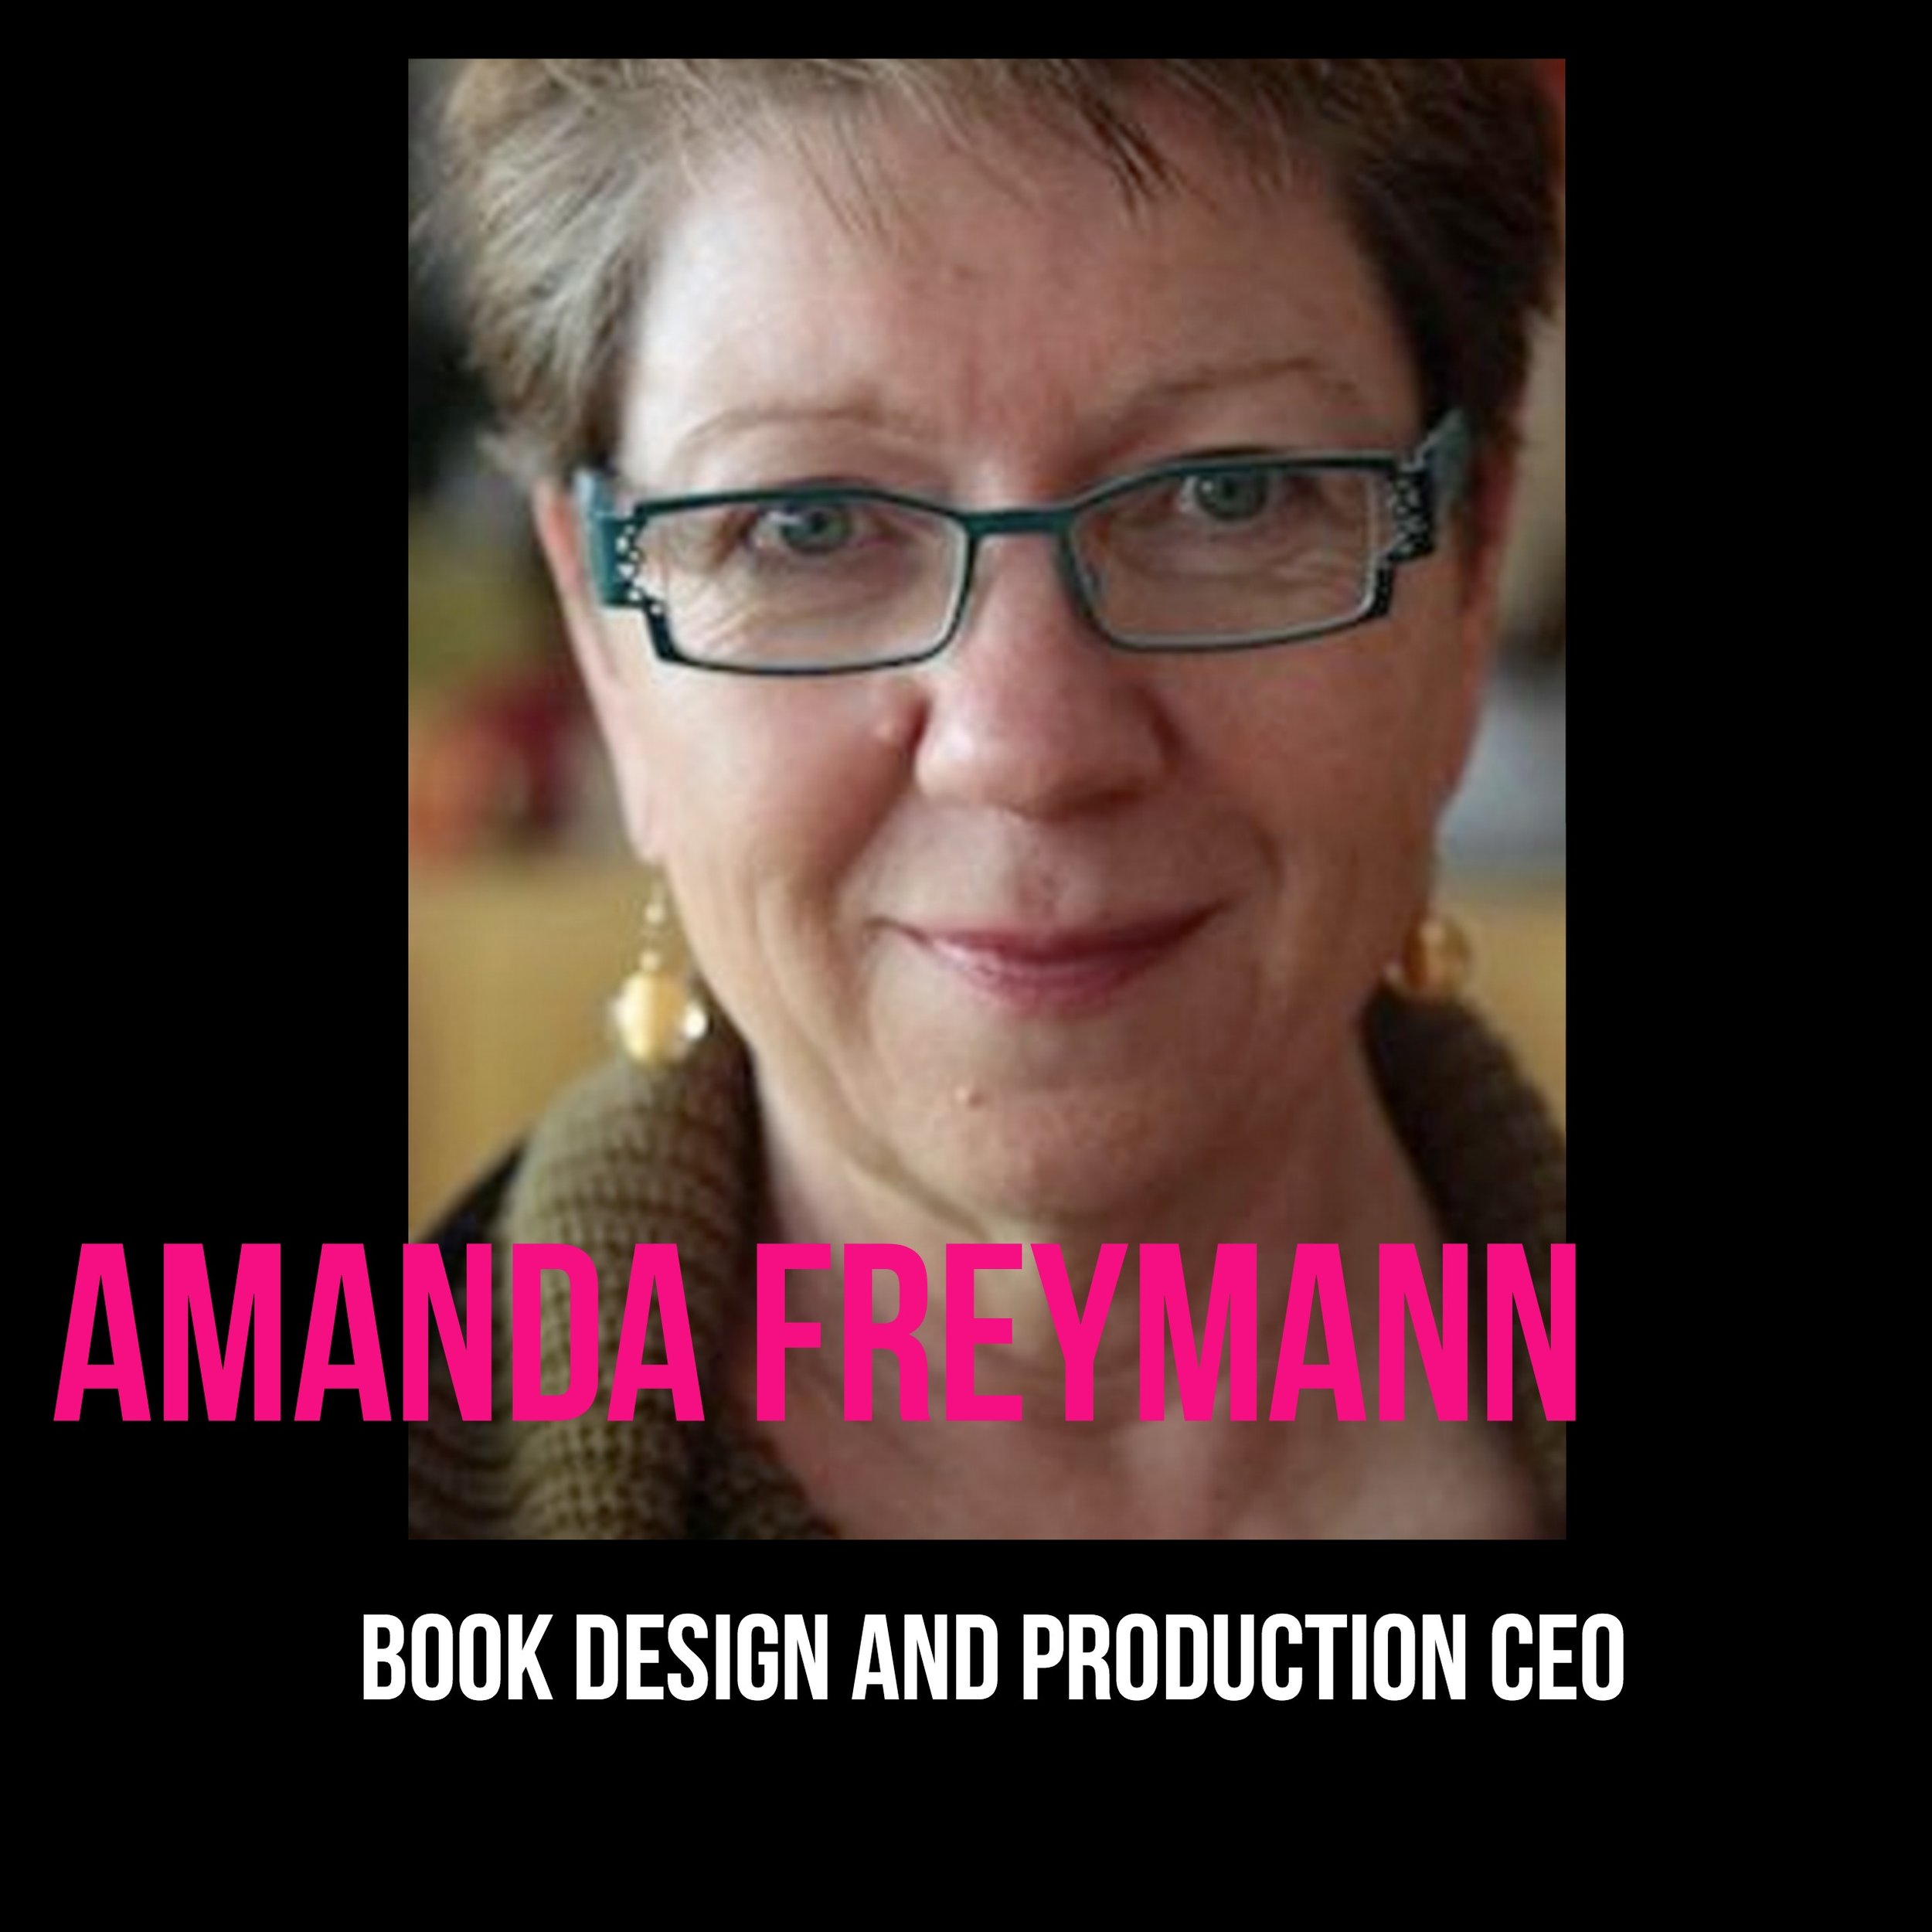 THE JILLS OF ALL TRADES™ Amanda Freymann Book Design and Production CEO